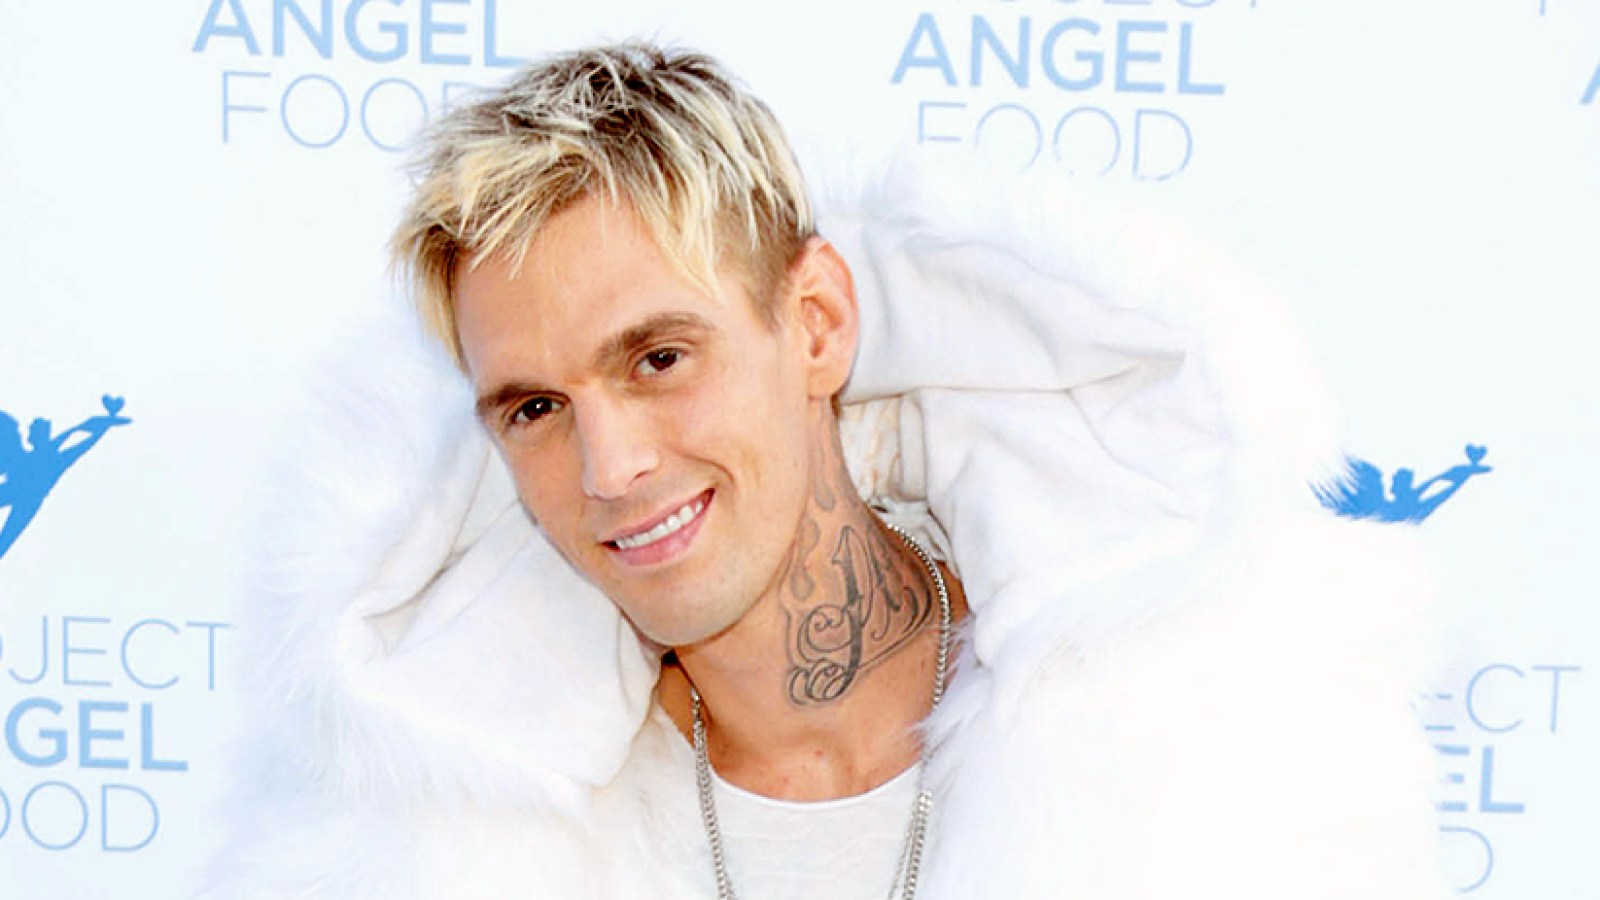 Aaron Carter Reveals If Hes Ready To Date Again After Breakup